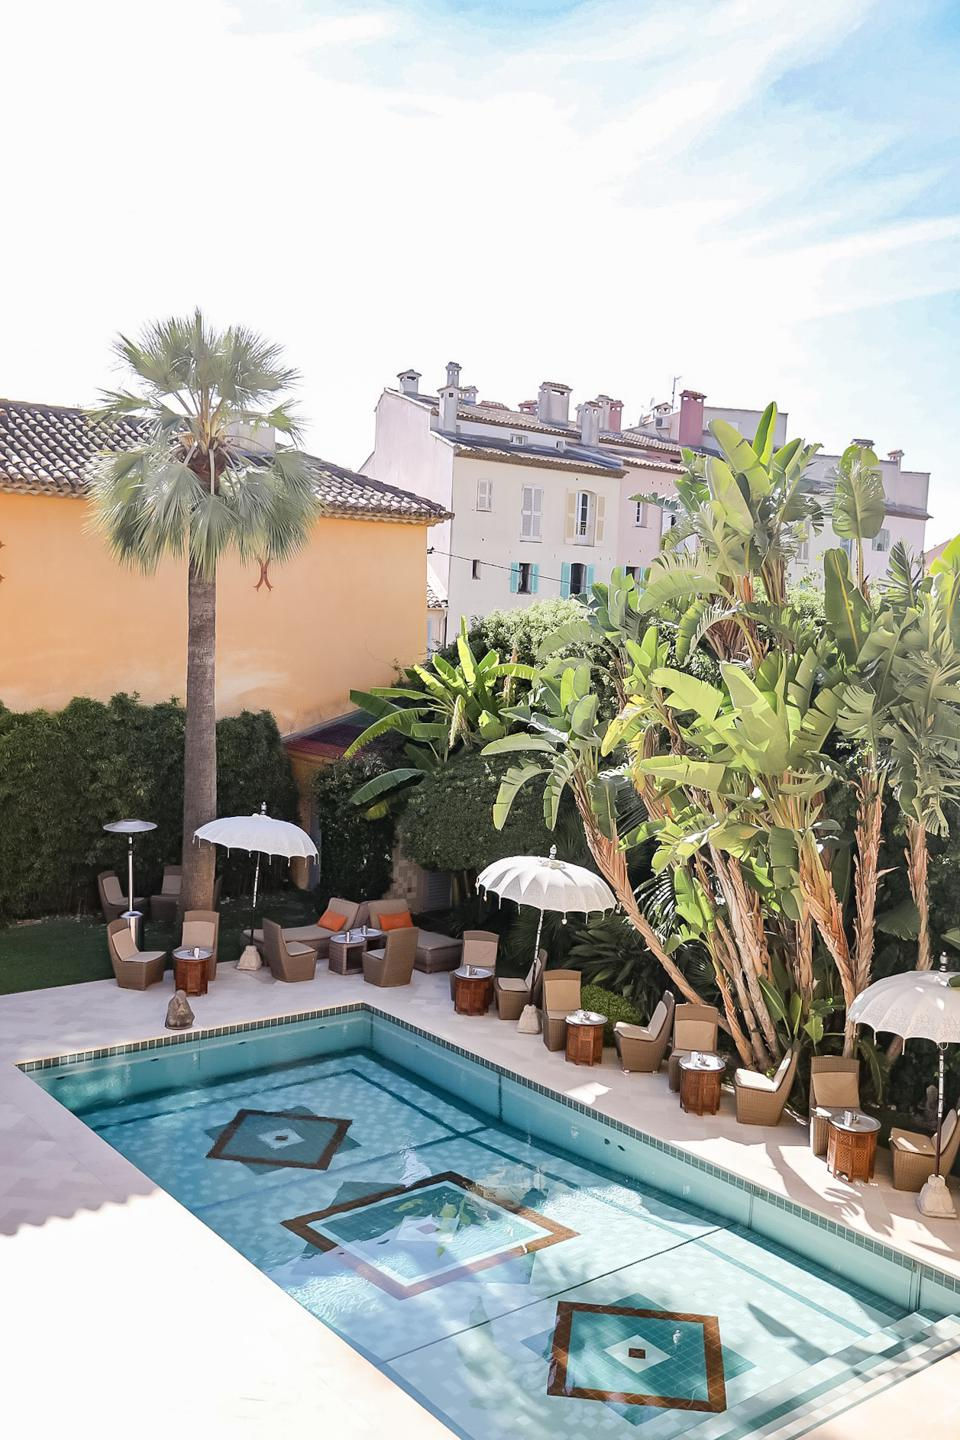 ST. TROPEZ - View of the pool at Pan Dei Palais